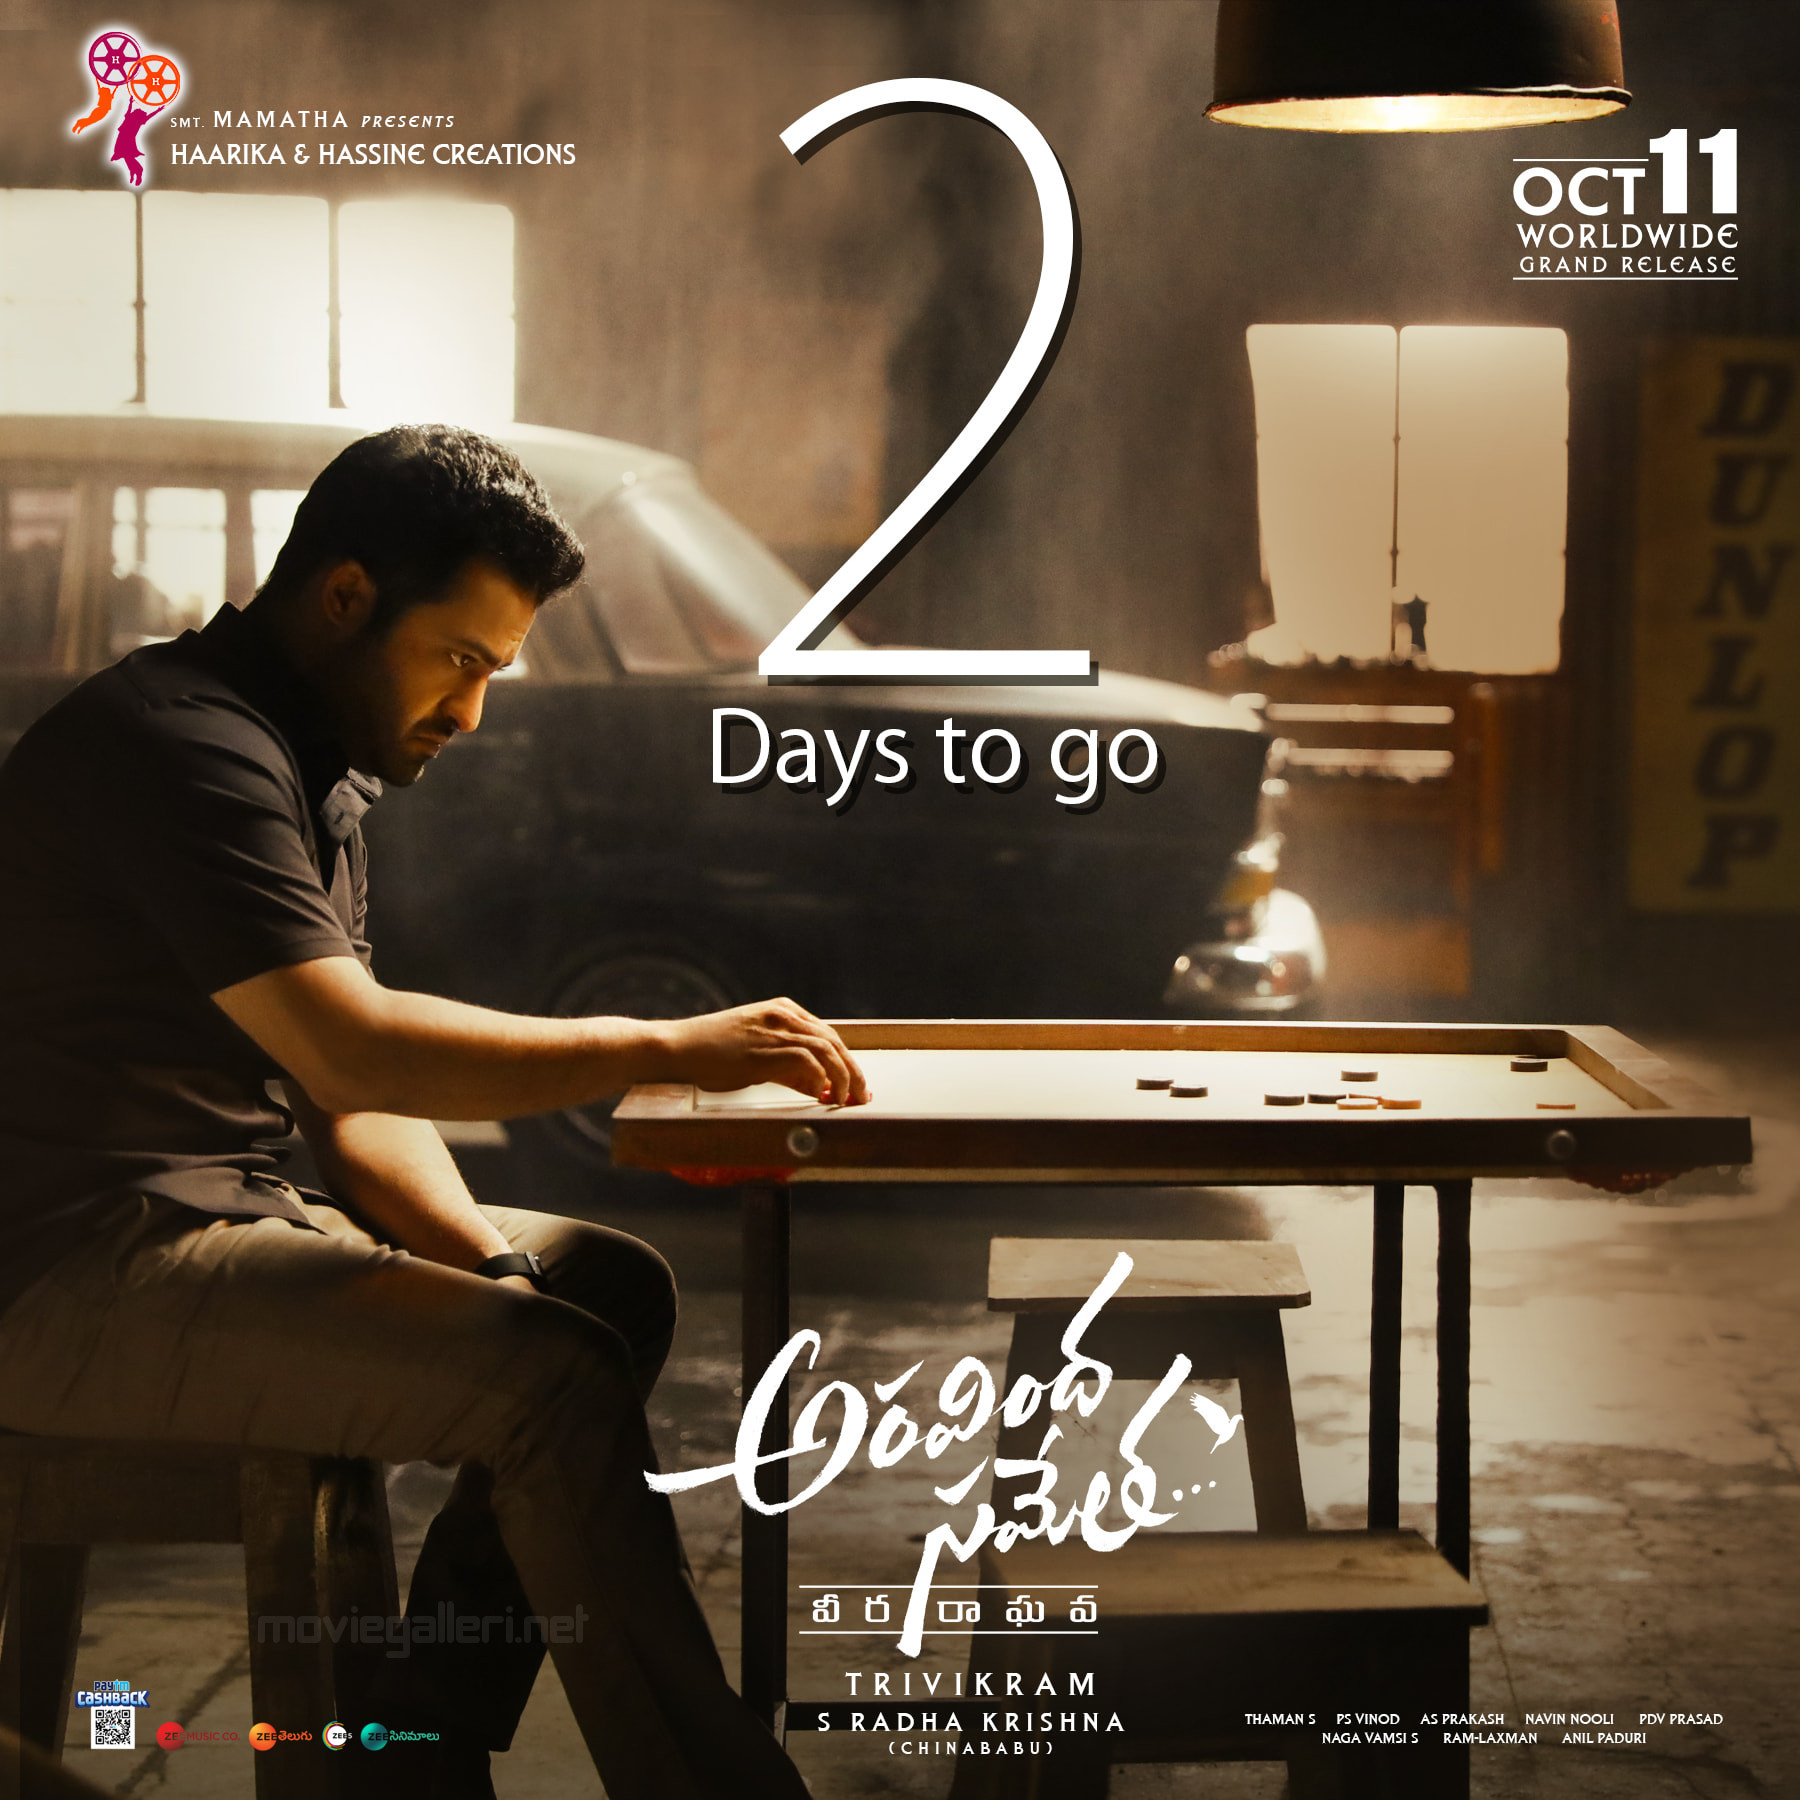 Jr NTR Aravindha Sametha Veera Raghava 2 Days to Go Poster